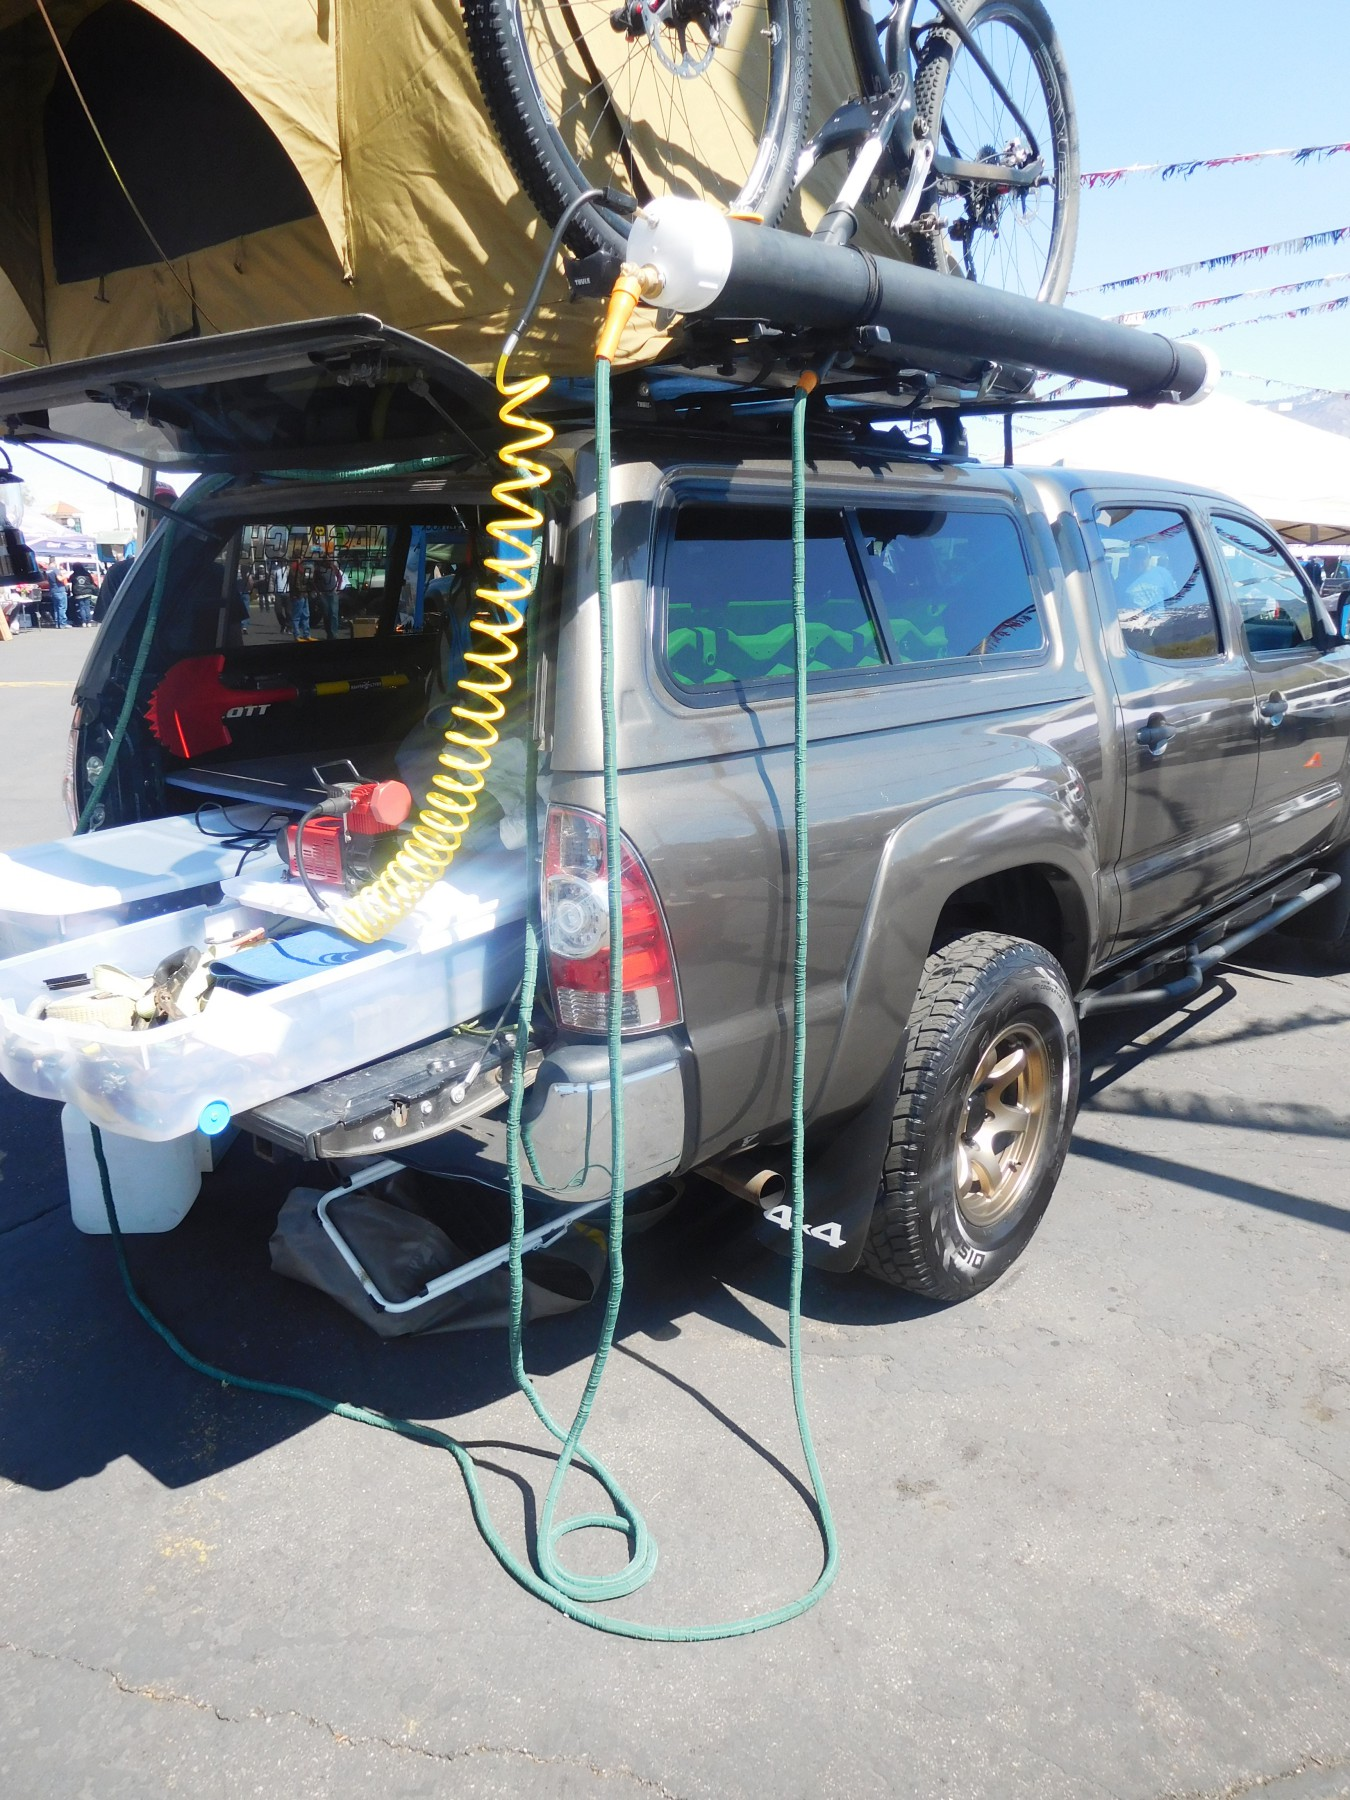 Diy Pvc Rooftop Solar Shower For A Car Van Suv Or Truck